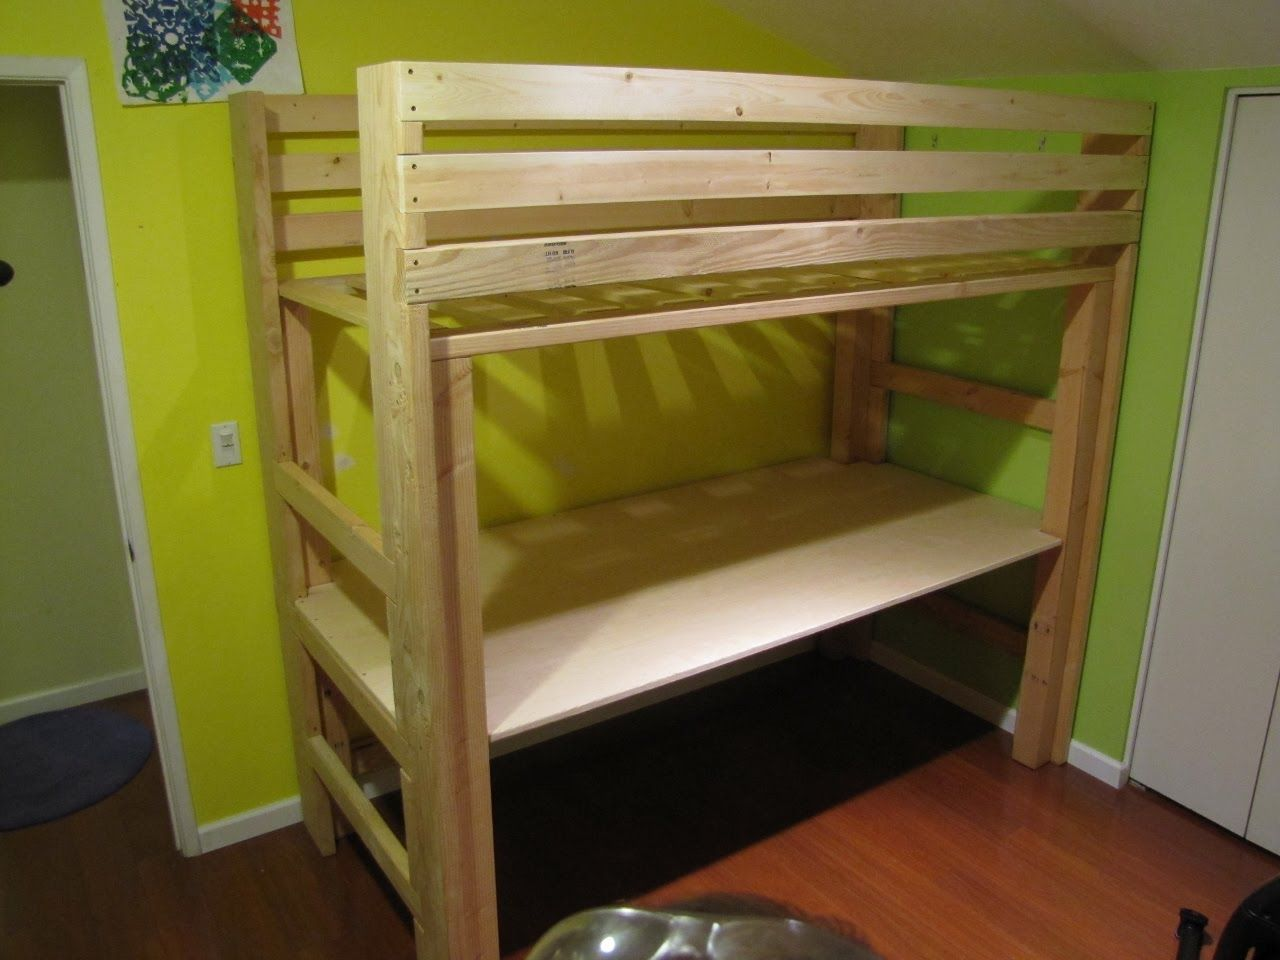 30 Twin Extra Long Bunk Beds Interior Design Bedroom Ideas On A